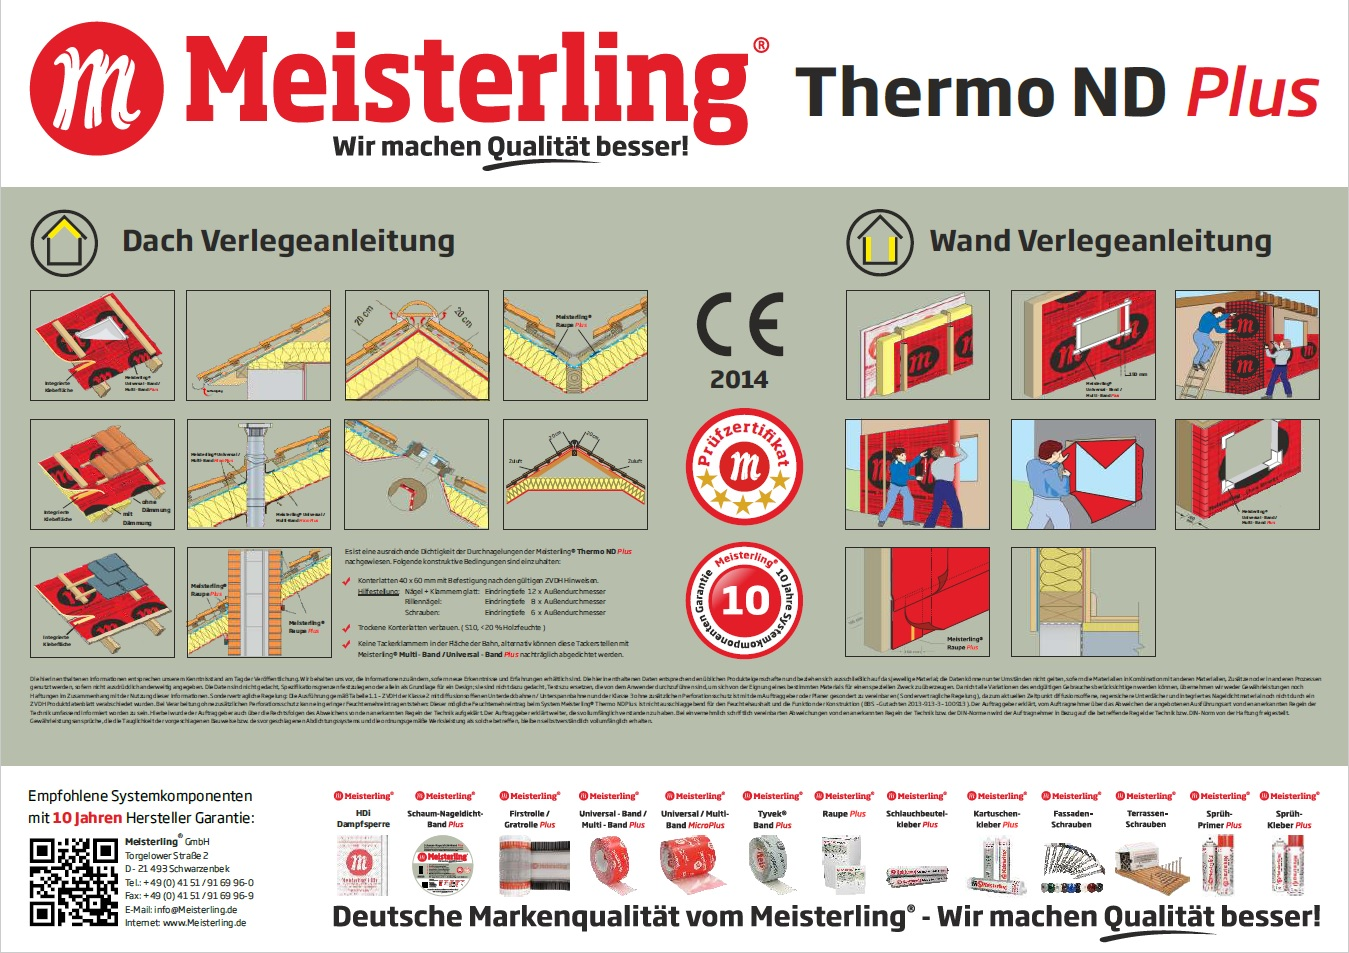 Meisterling Thermo ND PLUS Verlegeanleitung